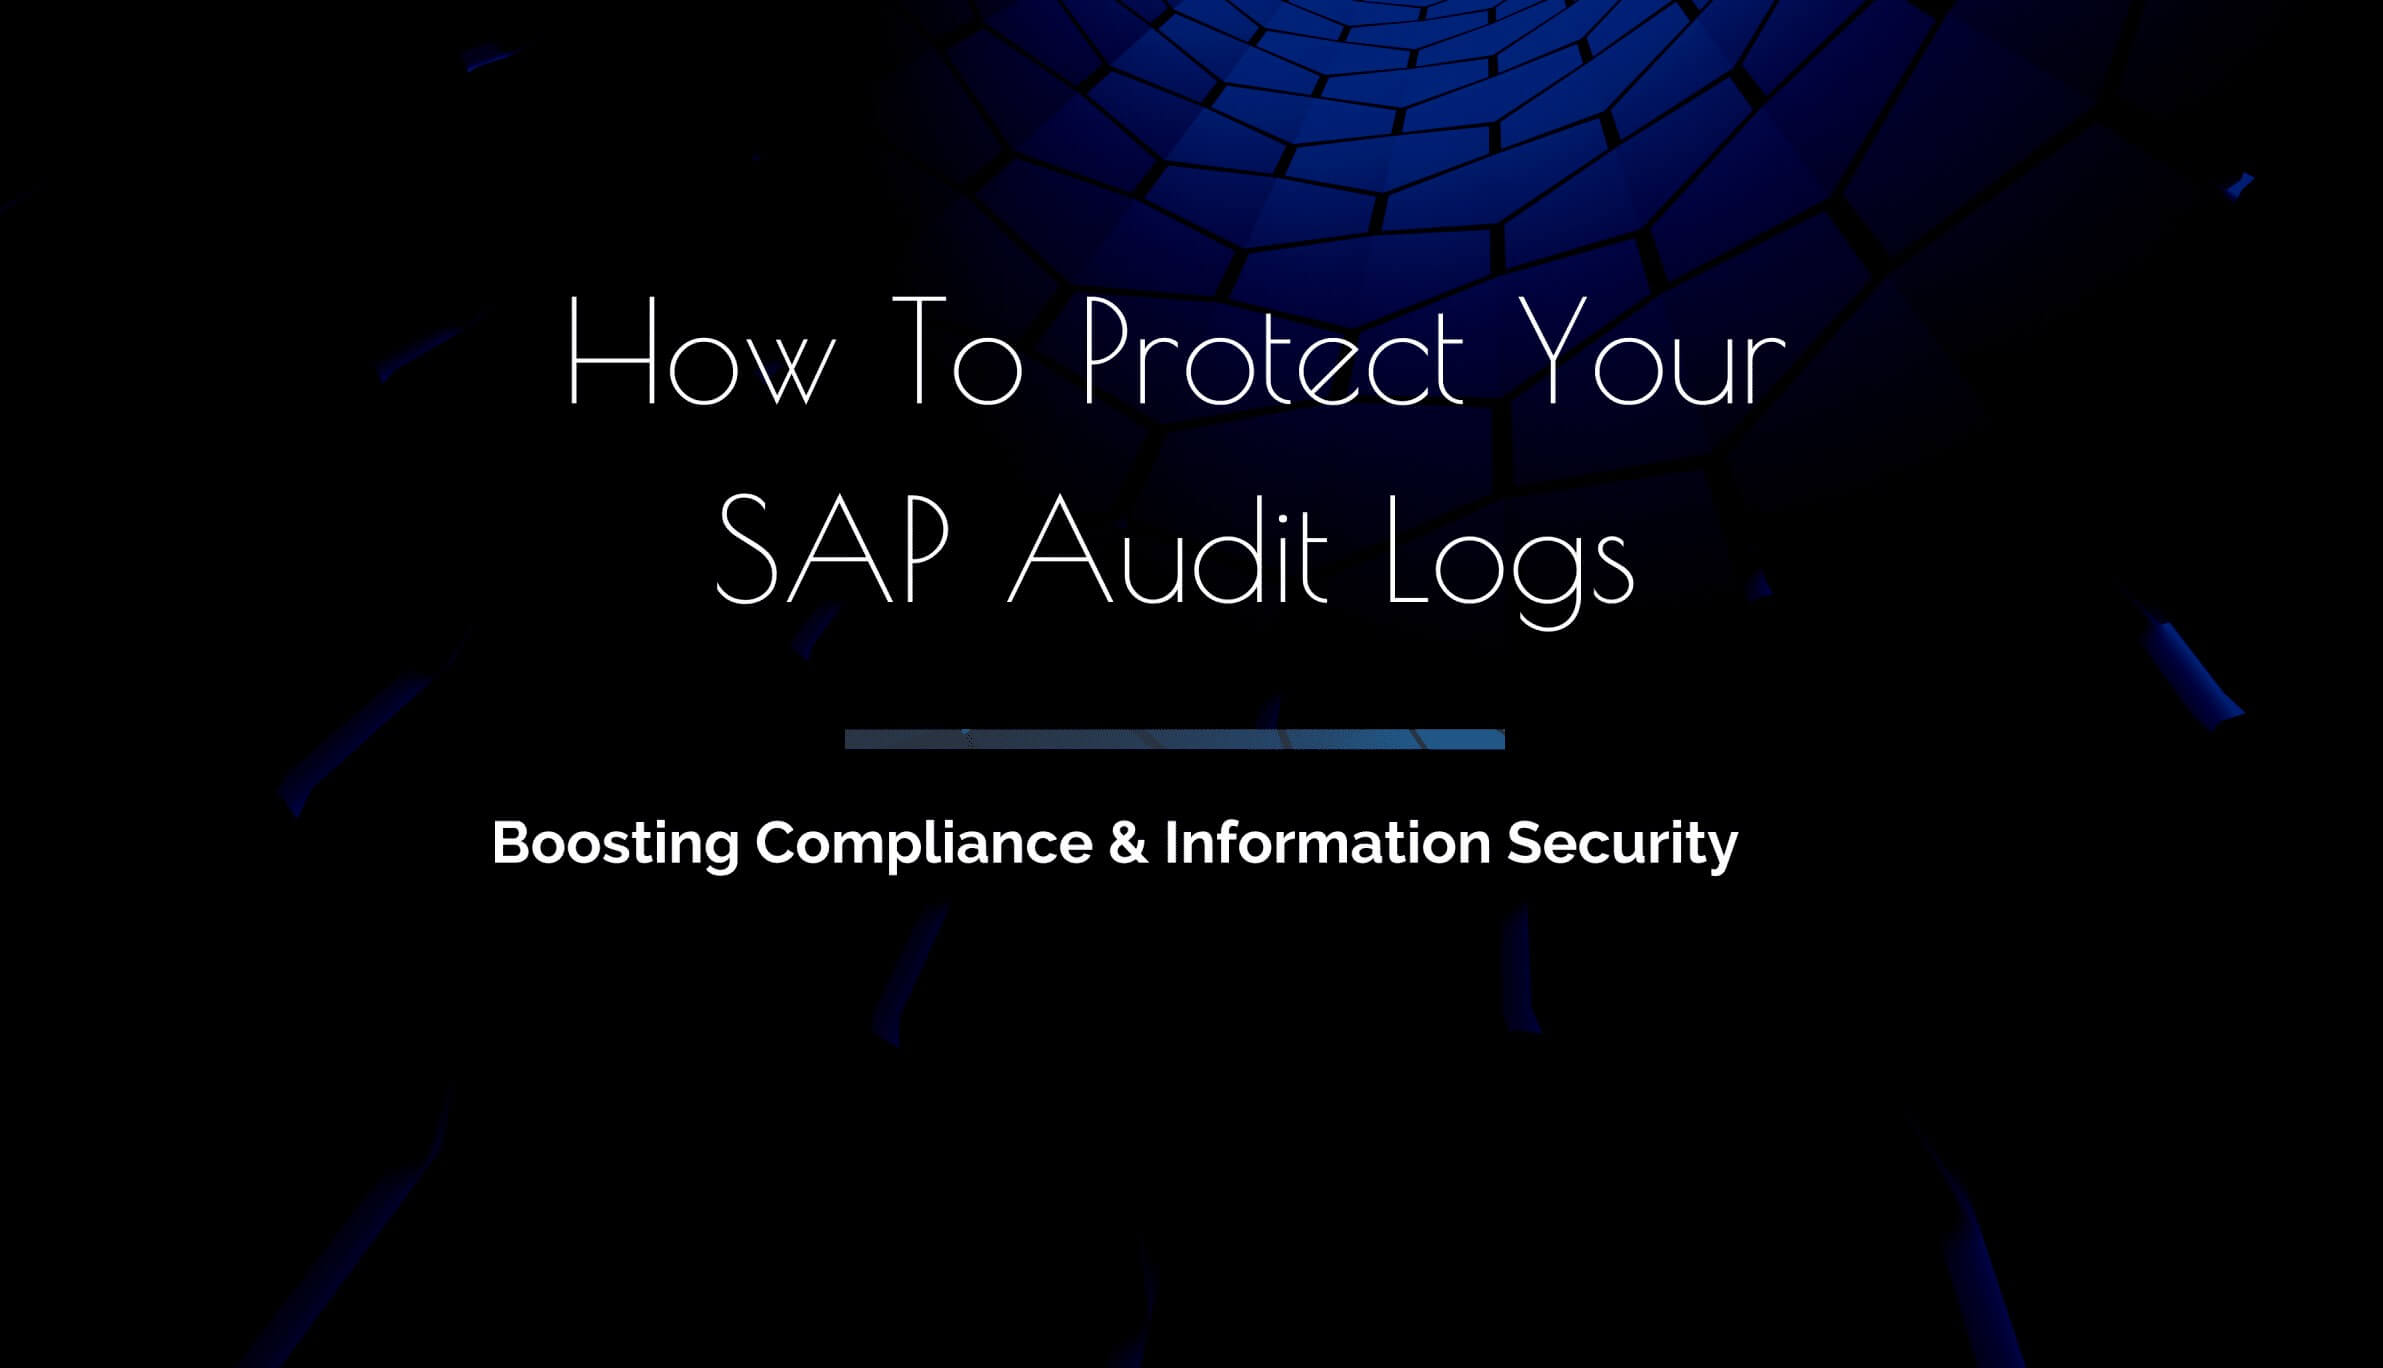 How-to-protect-SAP-audit-logs